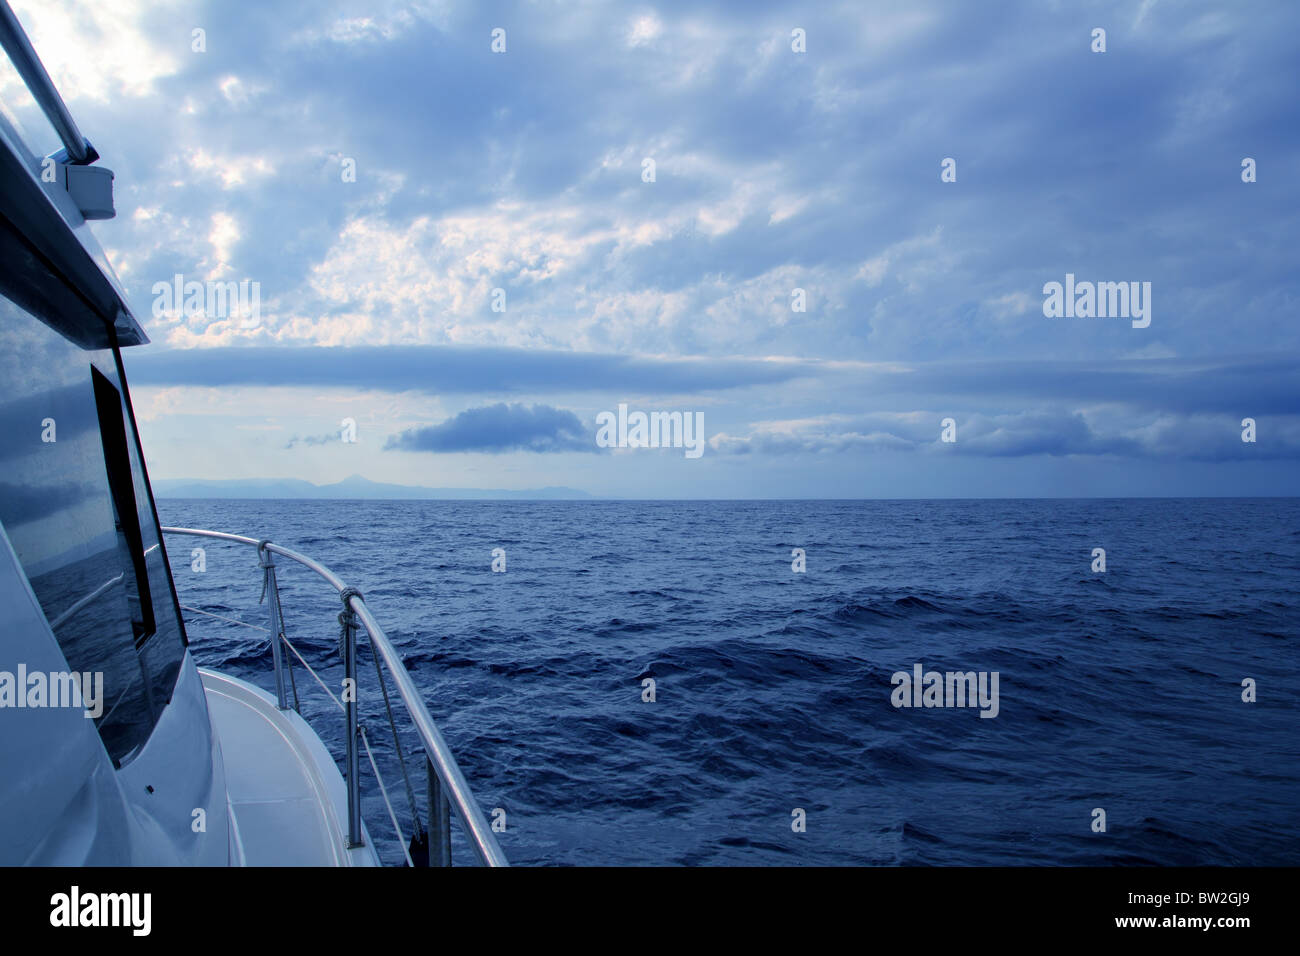 Boat sailing in cloudy stormy day blue ocean sea, yacht side view - Stock Image